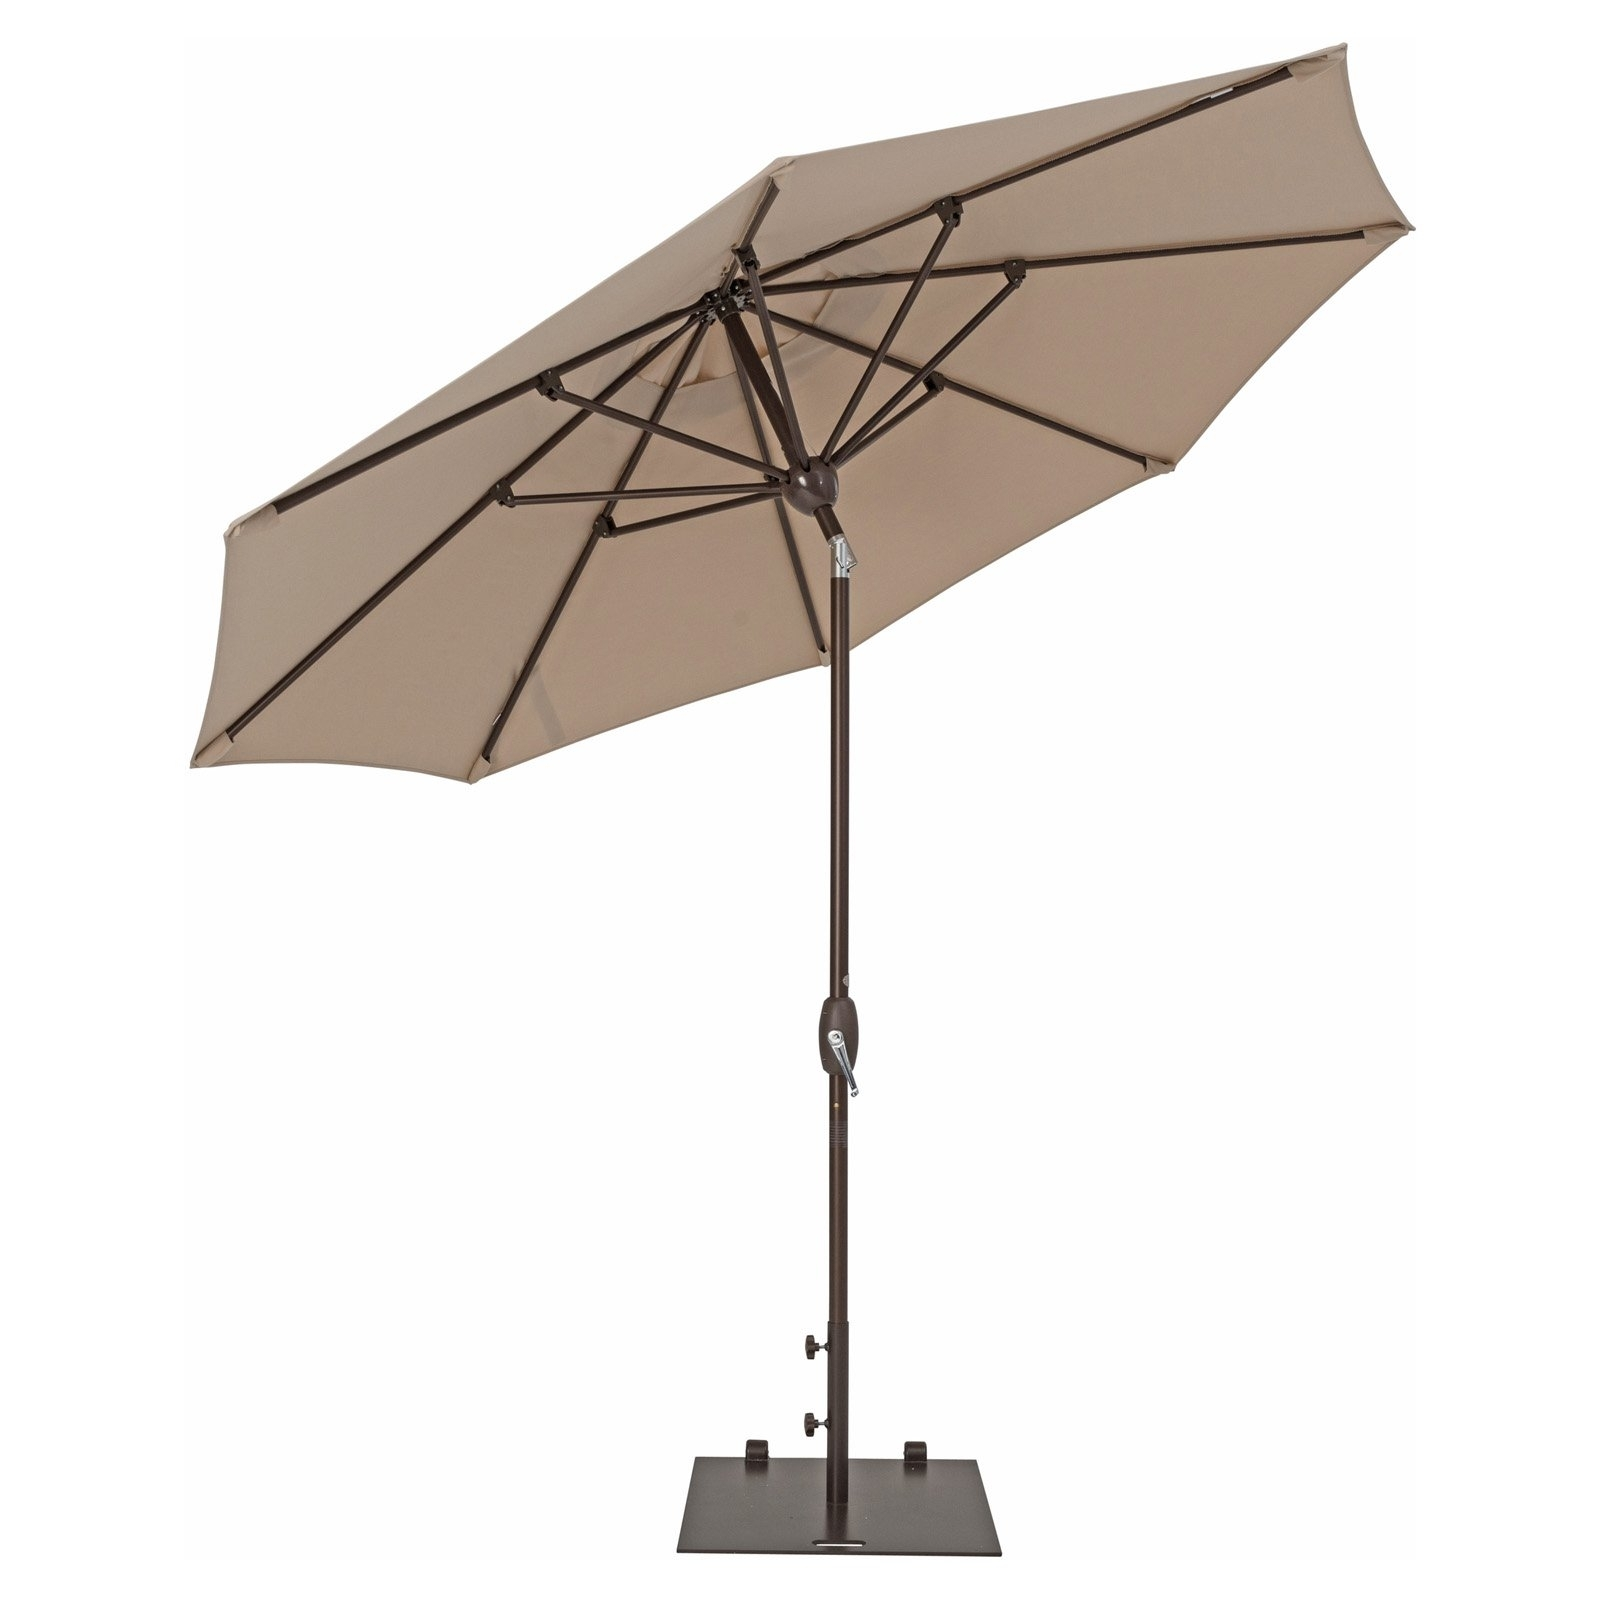 Preferred Patio Umbrellas With Sunbrella Fabric Regarding Trueshade Plus 9' Market Umbrella With Sunbrella Fabric, Auto Tilt (View 16 of 20)